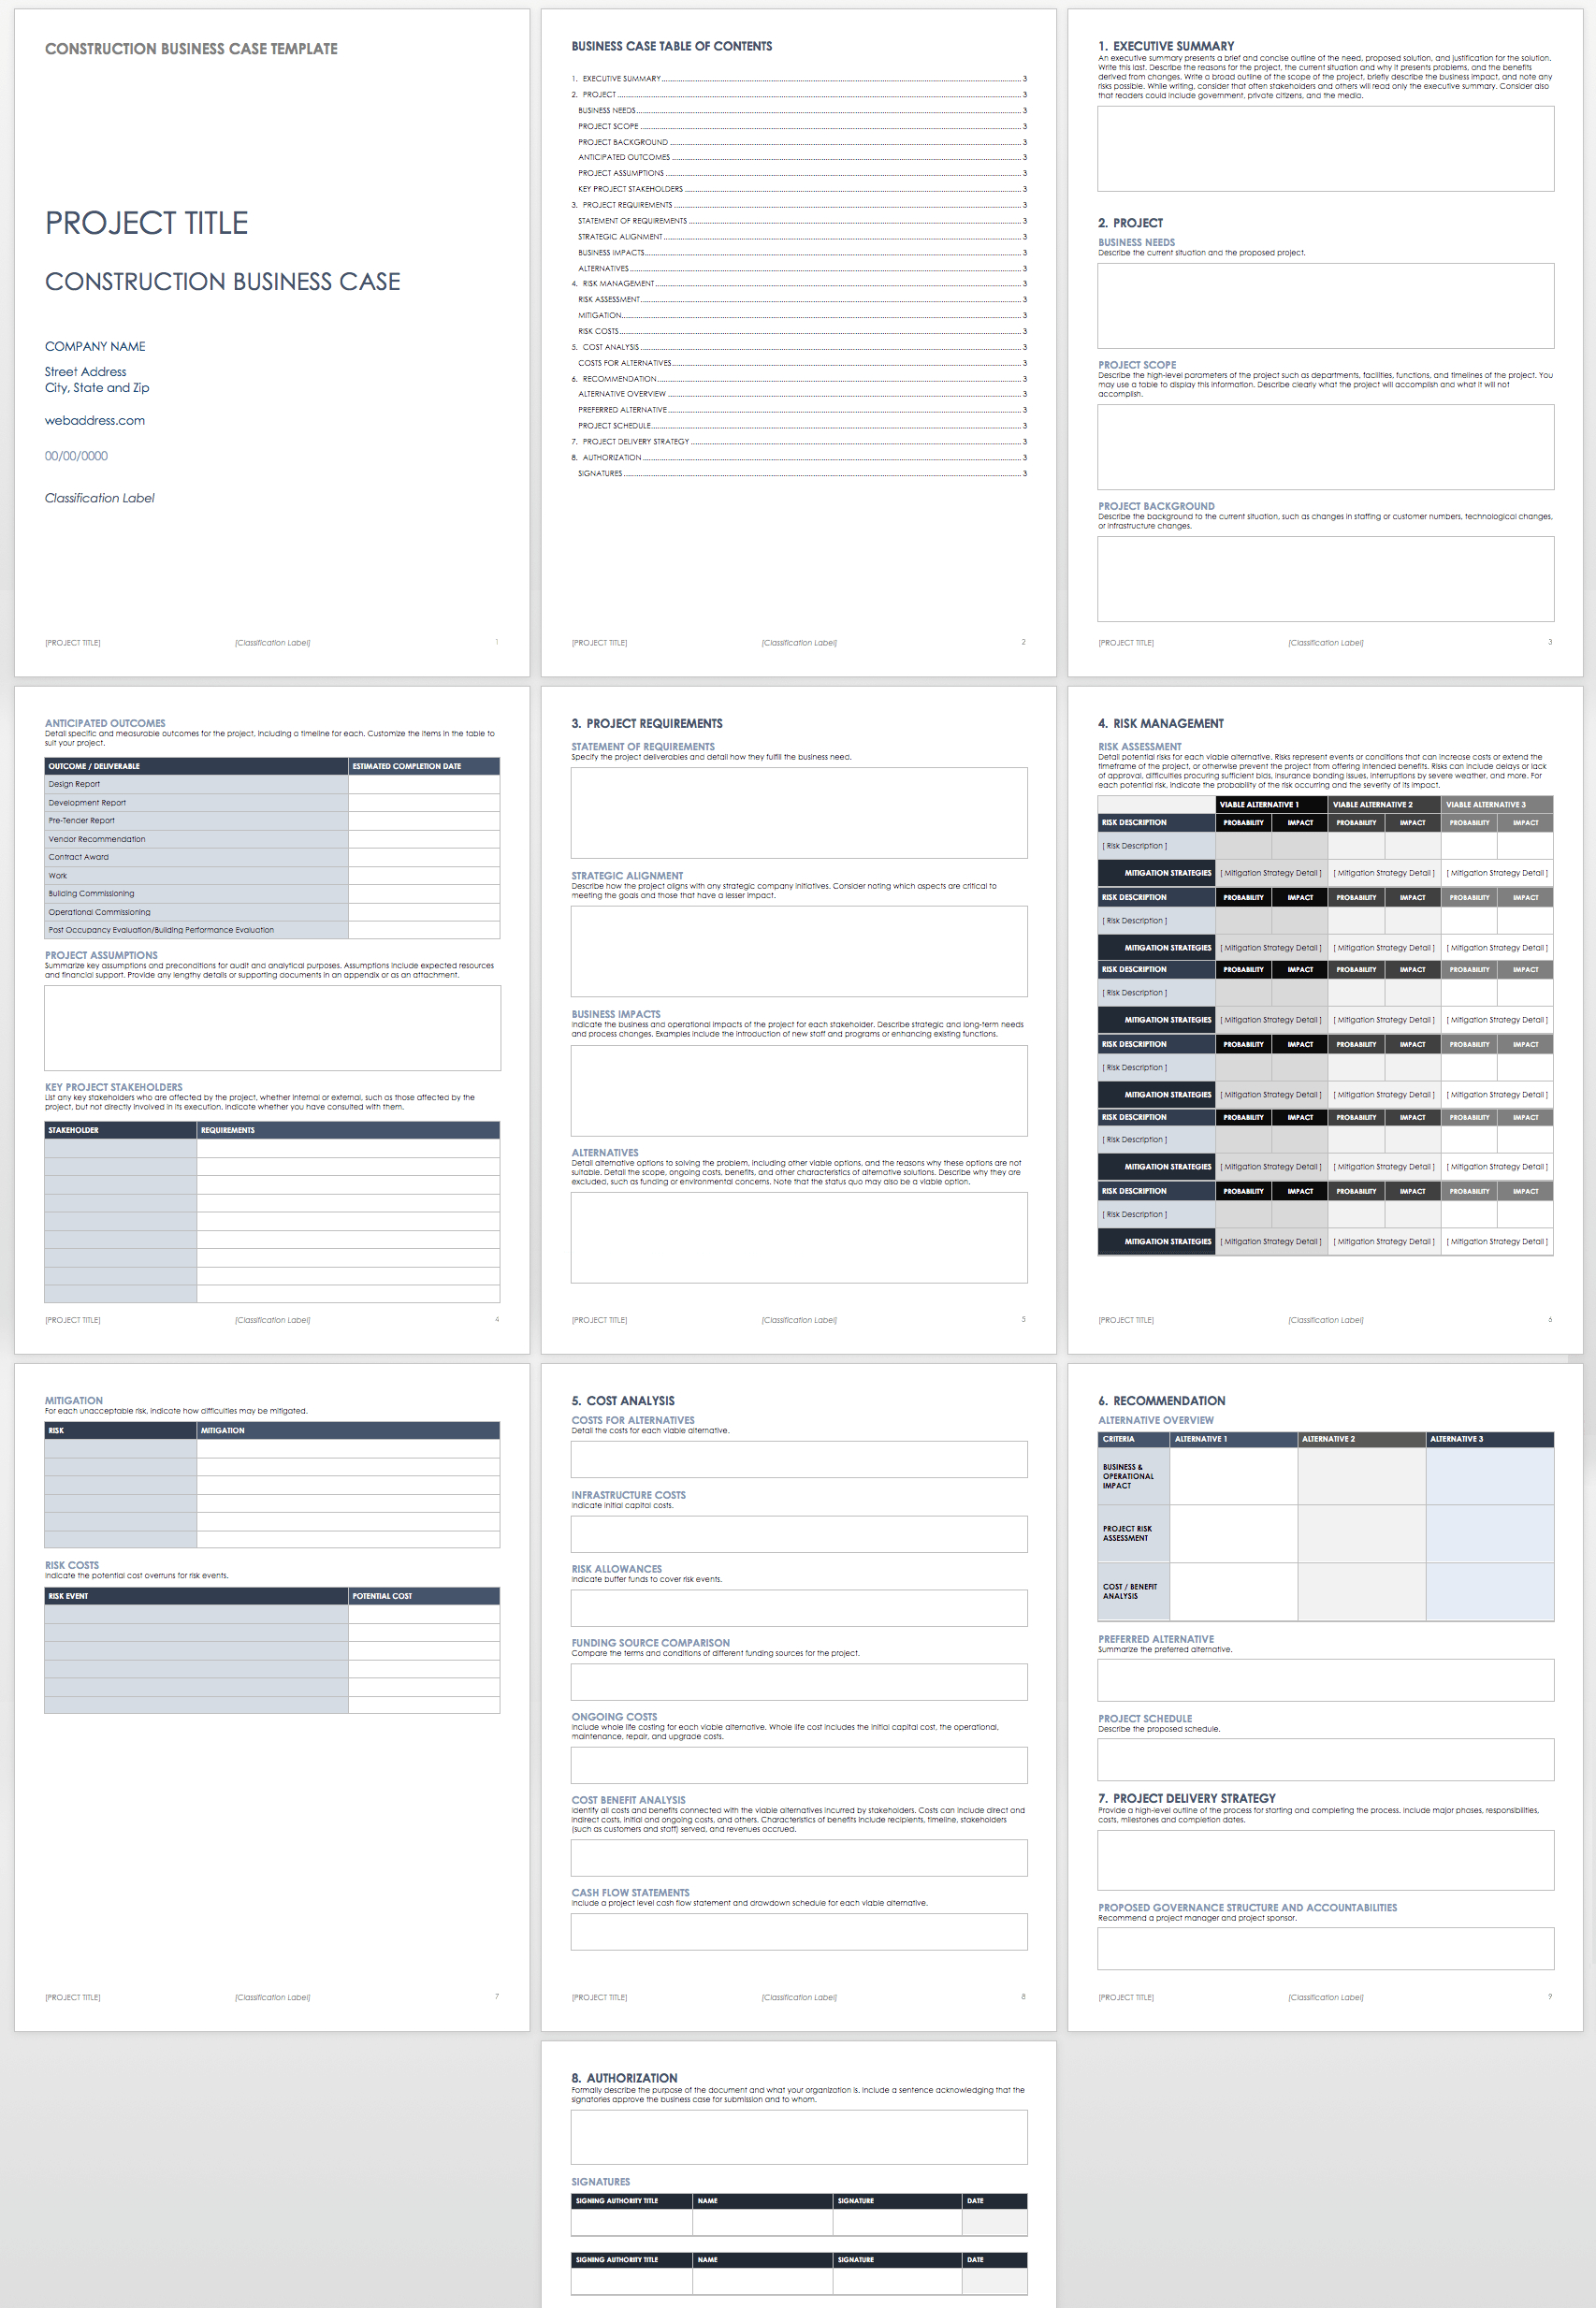 Ic Construction Business Case Template Word Imposing Ideas Uk Within Prince2 Business Case Template Word